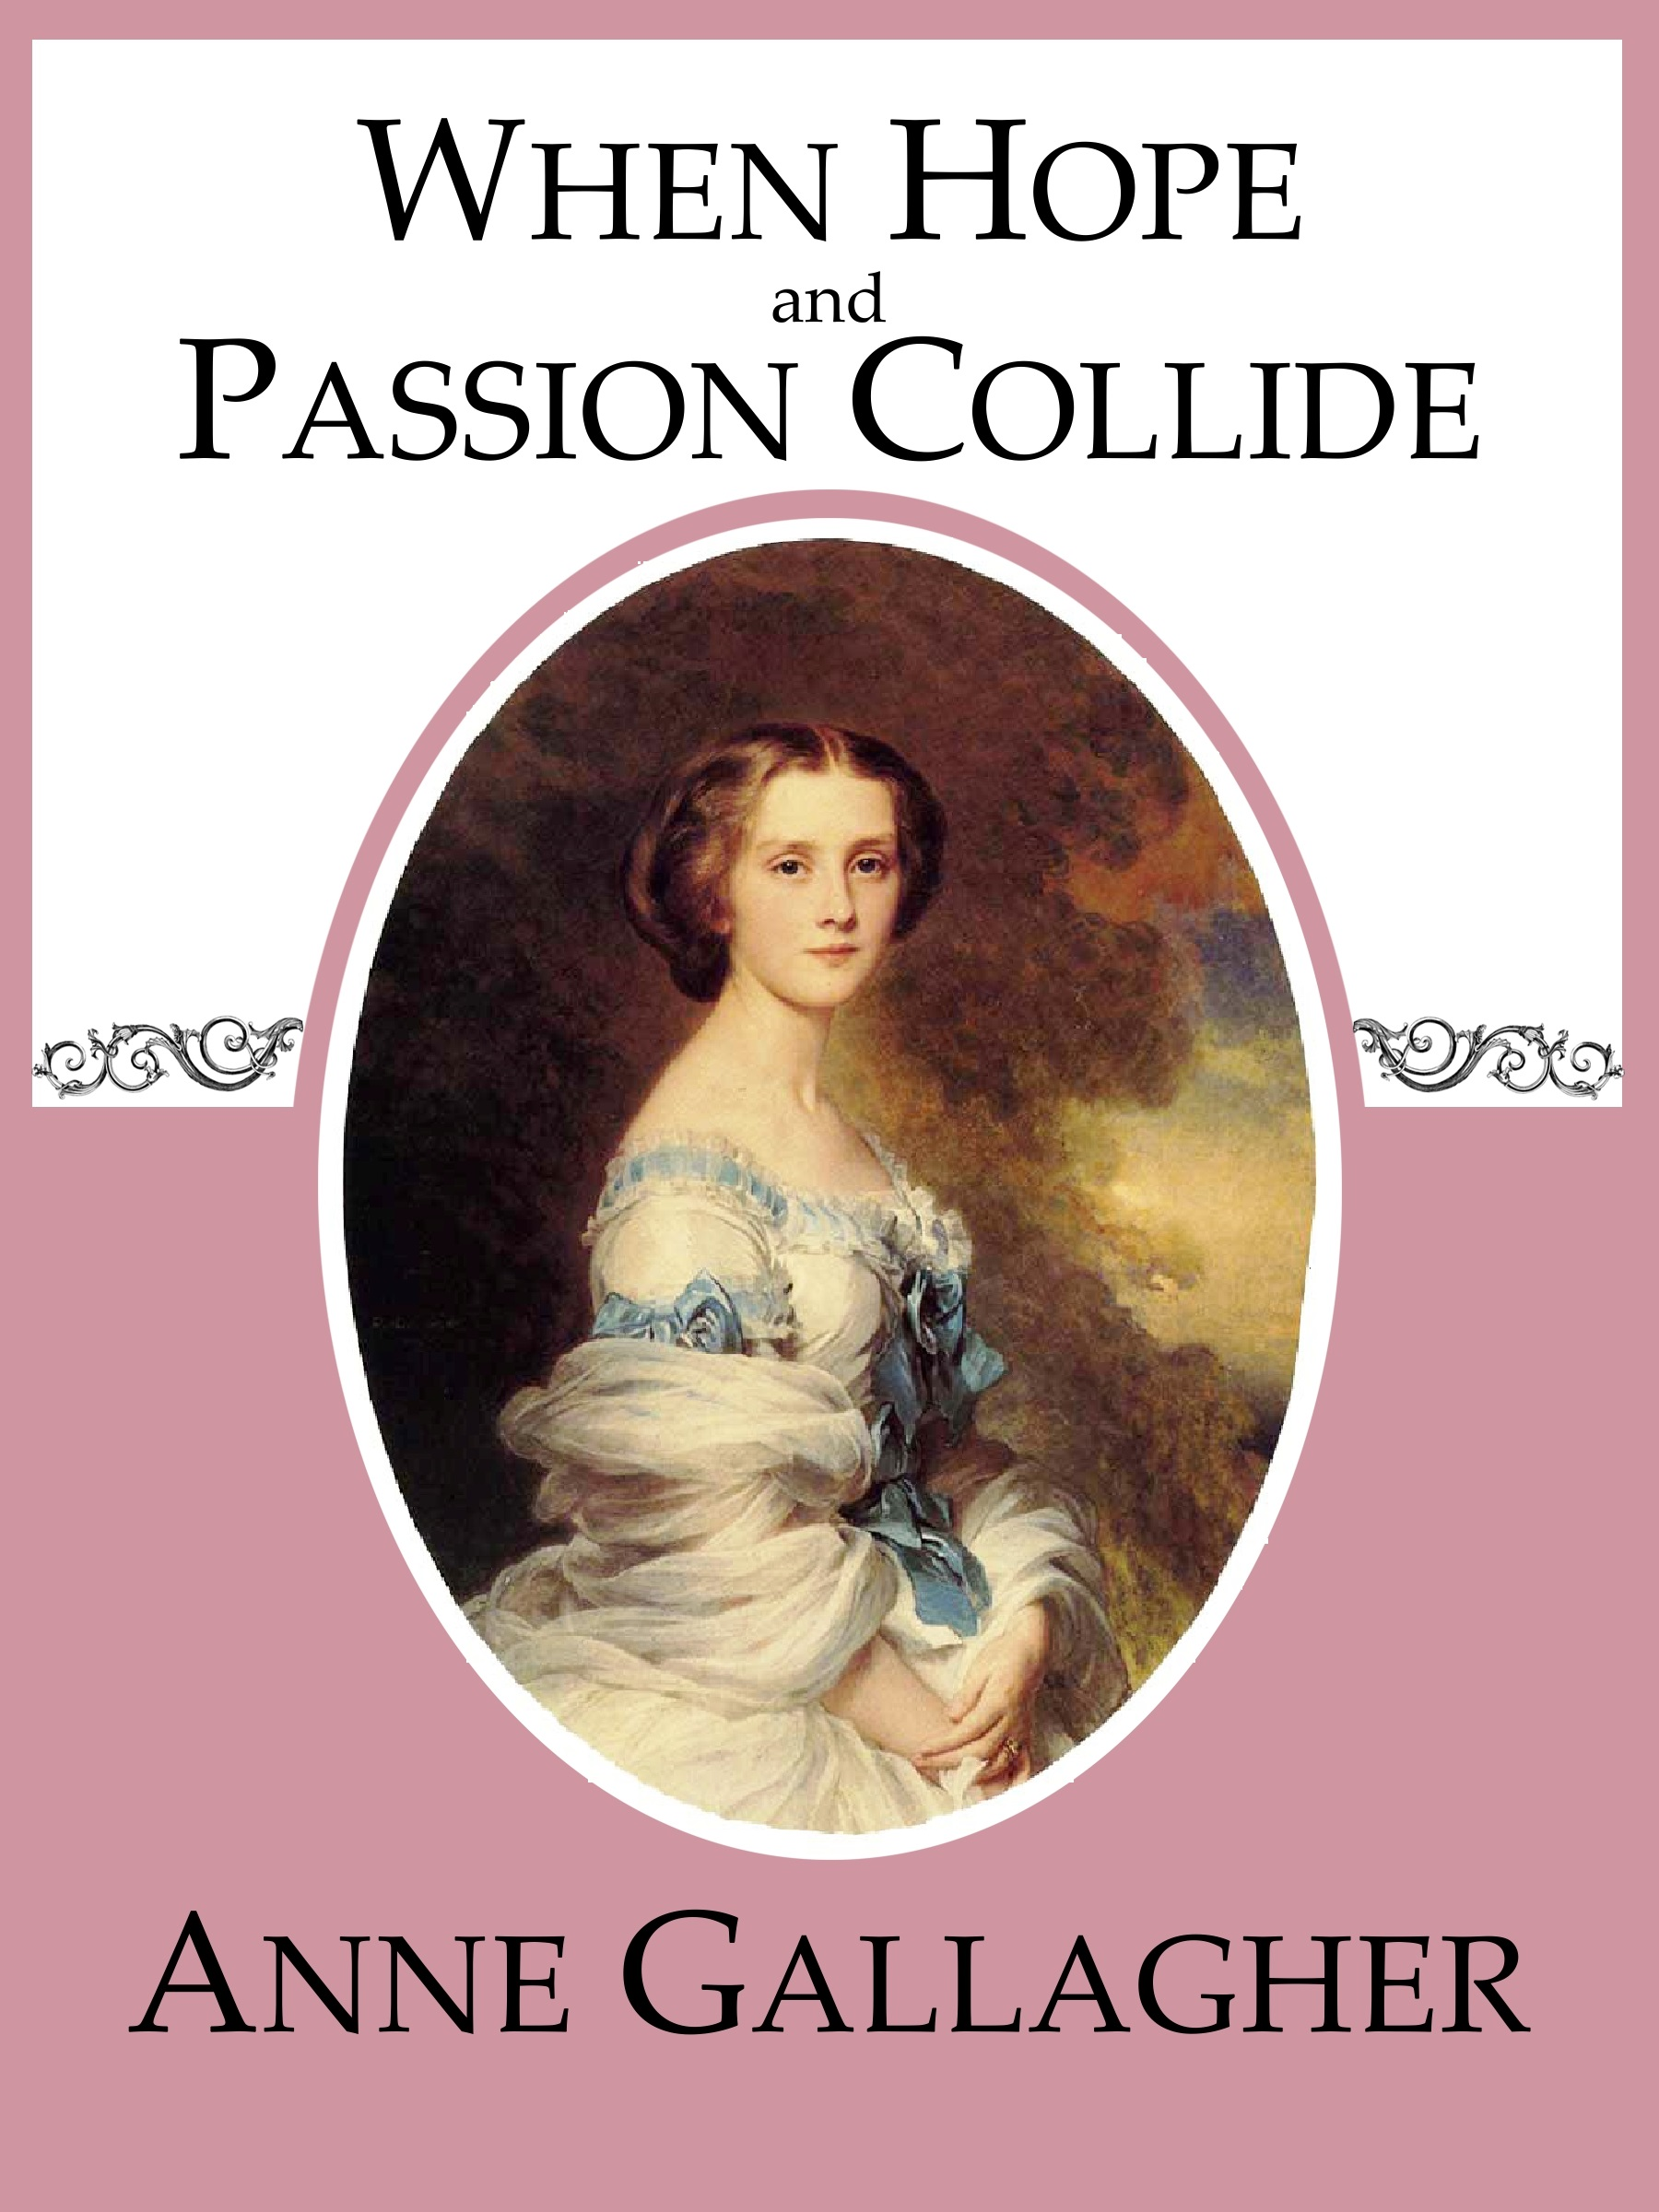 When Hope and Passion Collide, an Ebook by Anne Gallagher